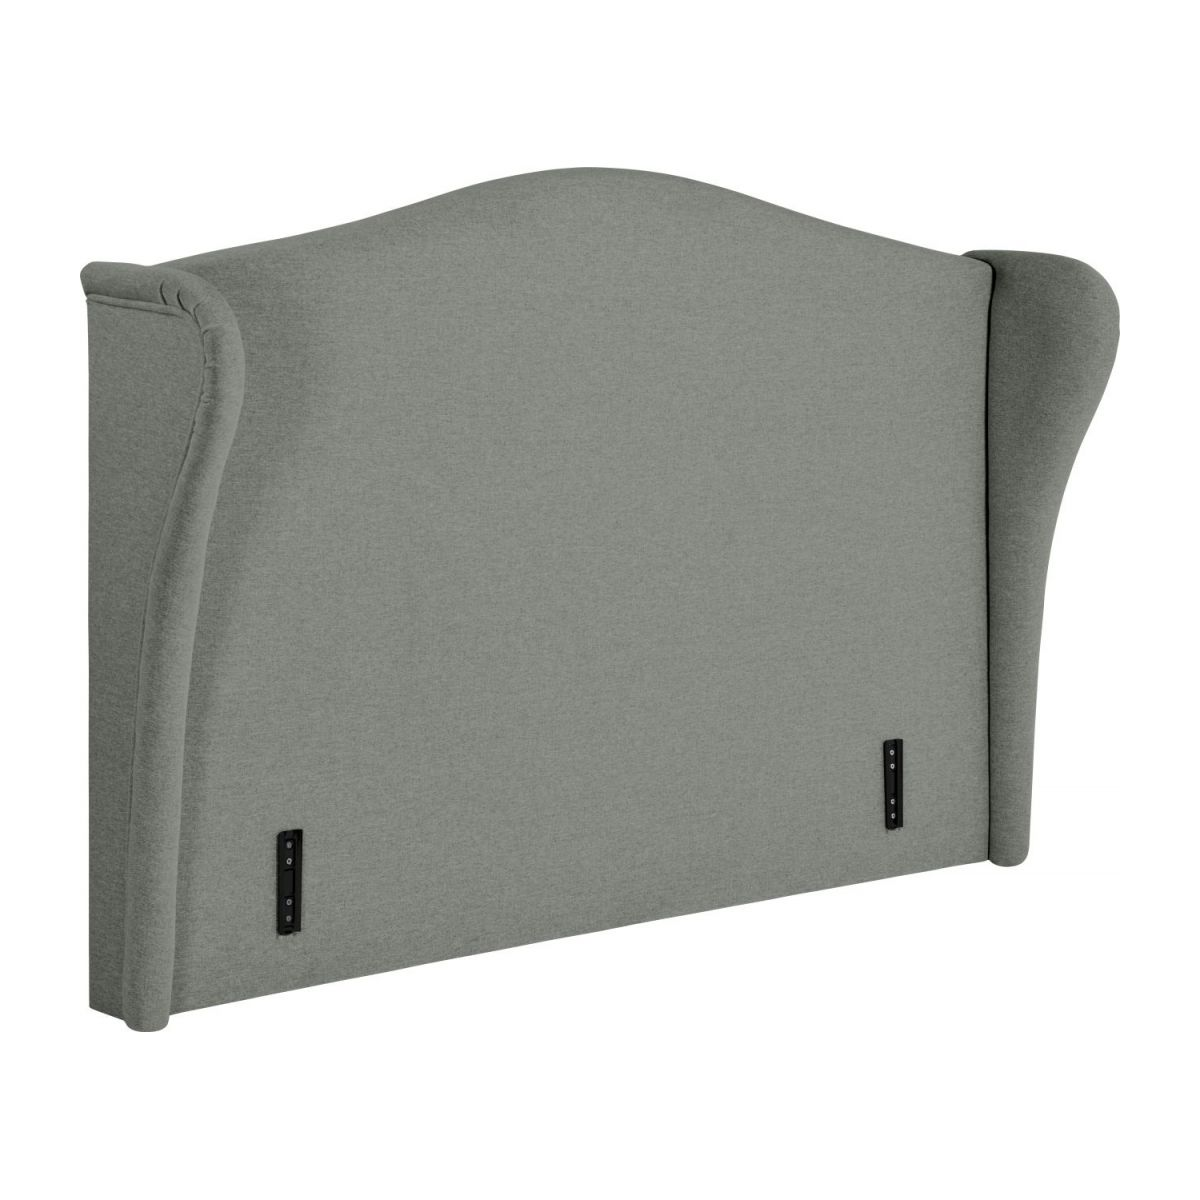 Headboard for 140cm box spring in fabric, mouse-grey n°2